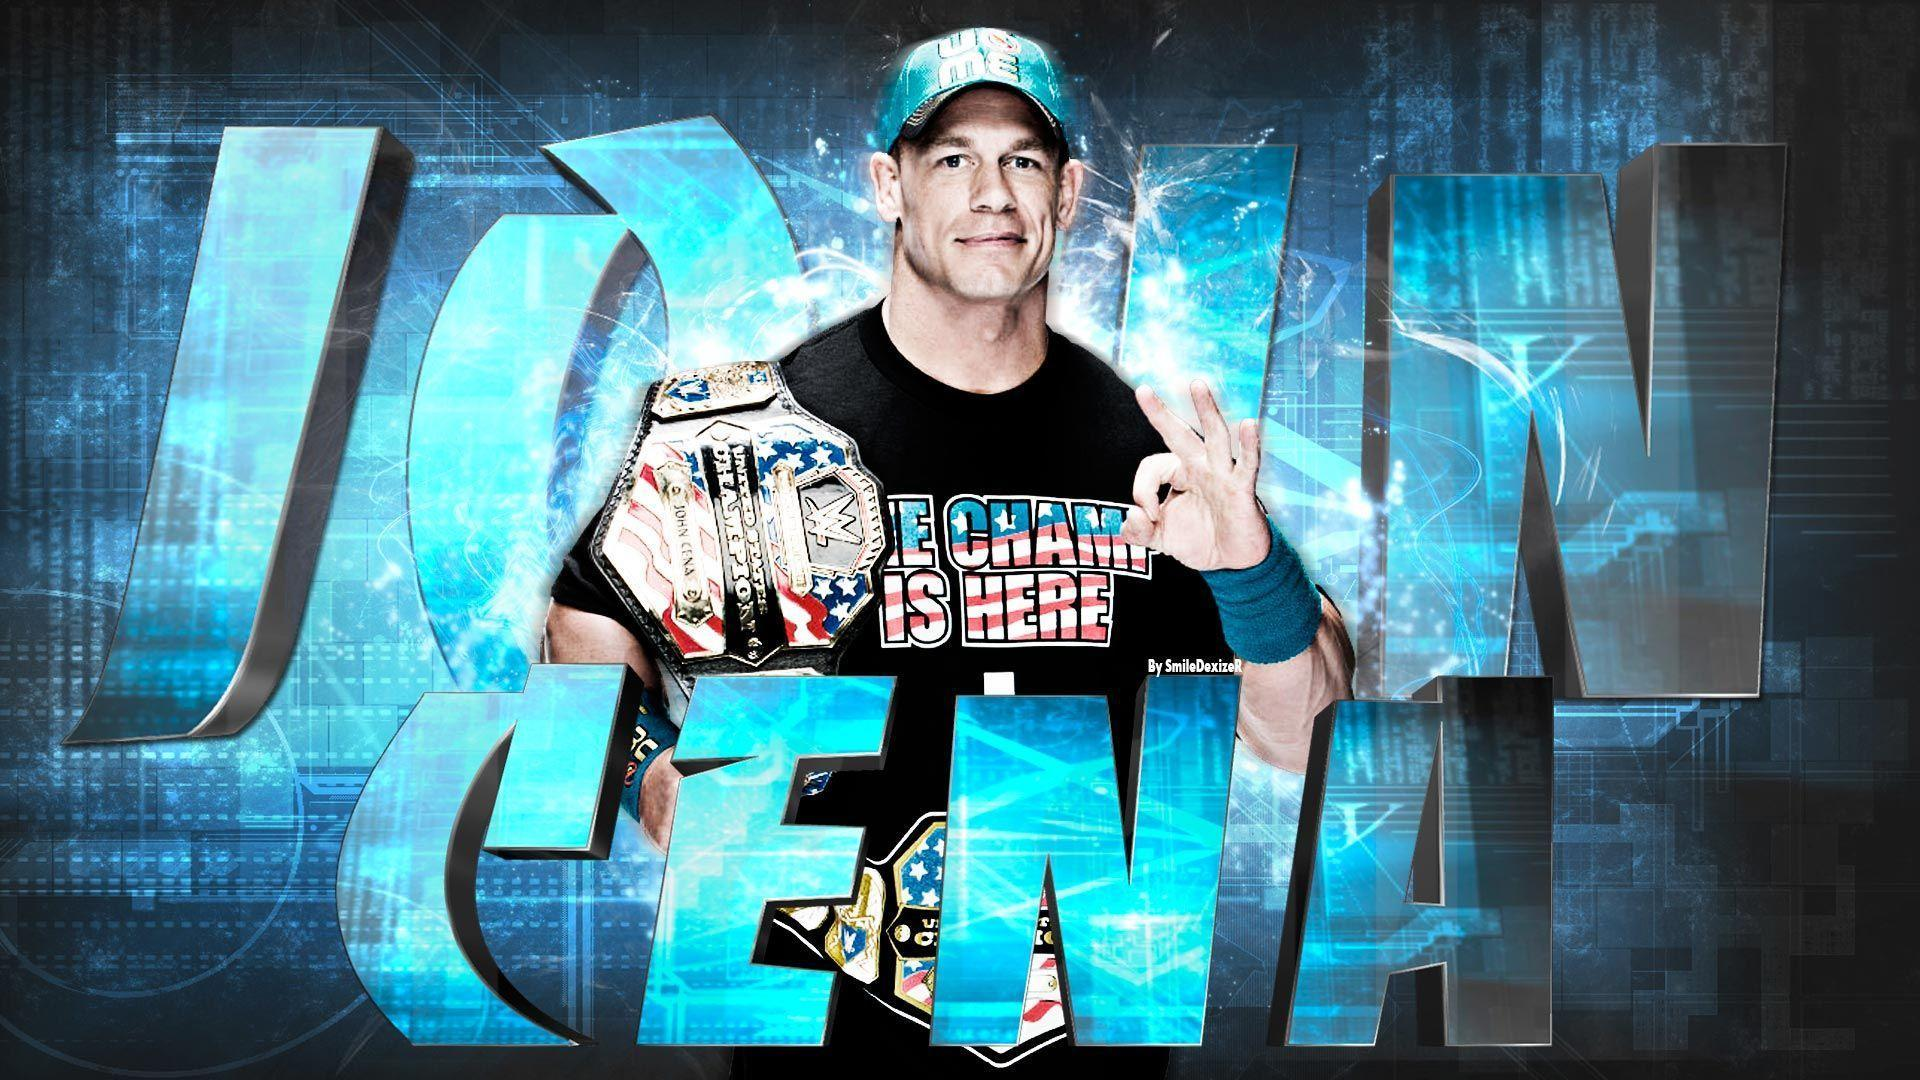 wwe wallpaper 1280x1024 jhone chena - photo #32